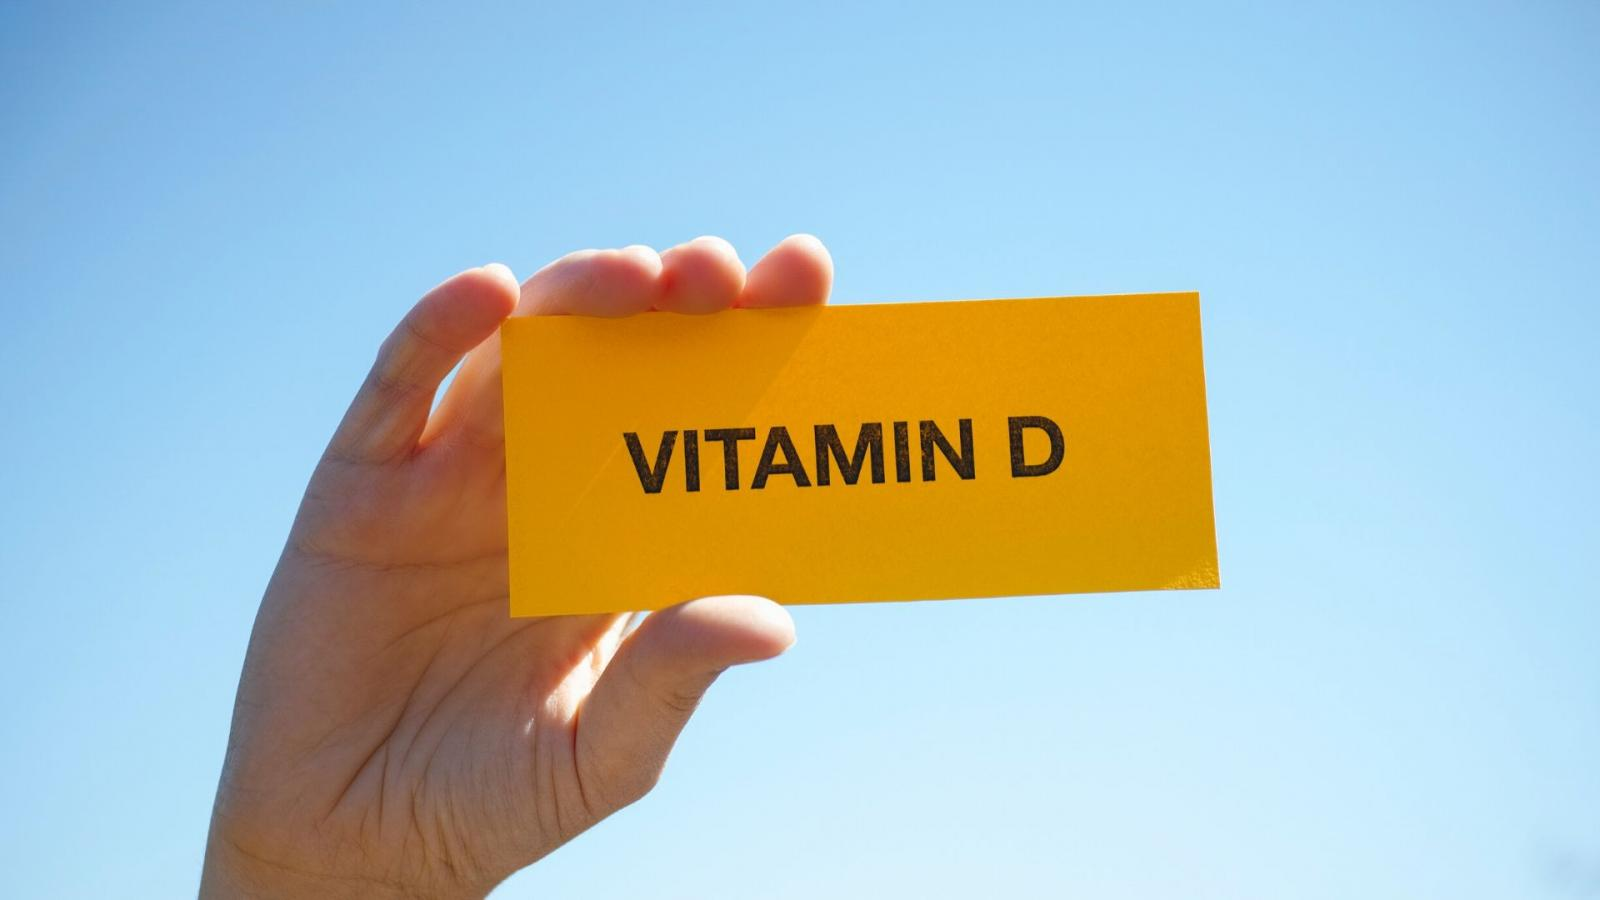 When Is the Best Time to Take Vitamin D? Morning or Night?